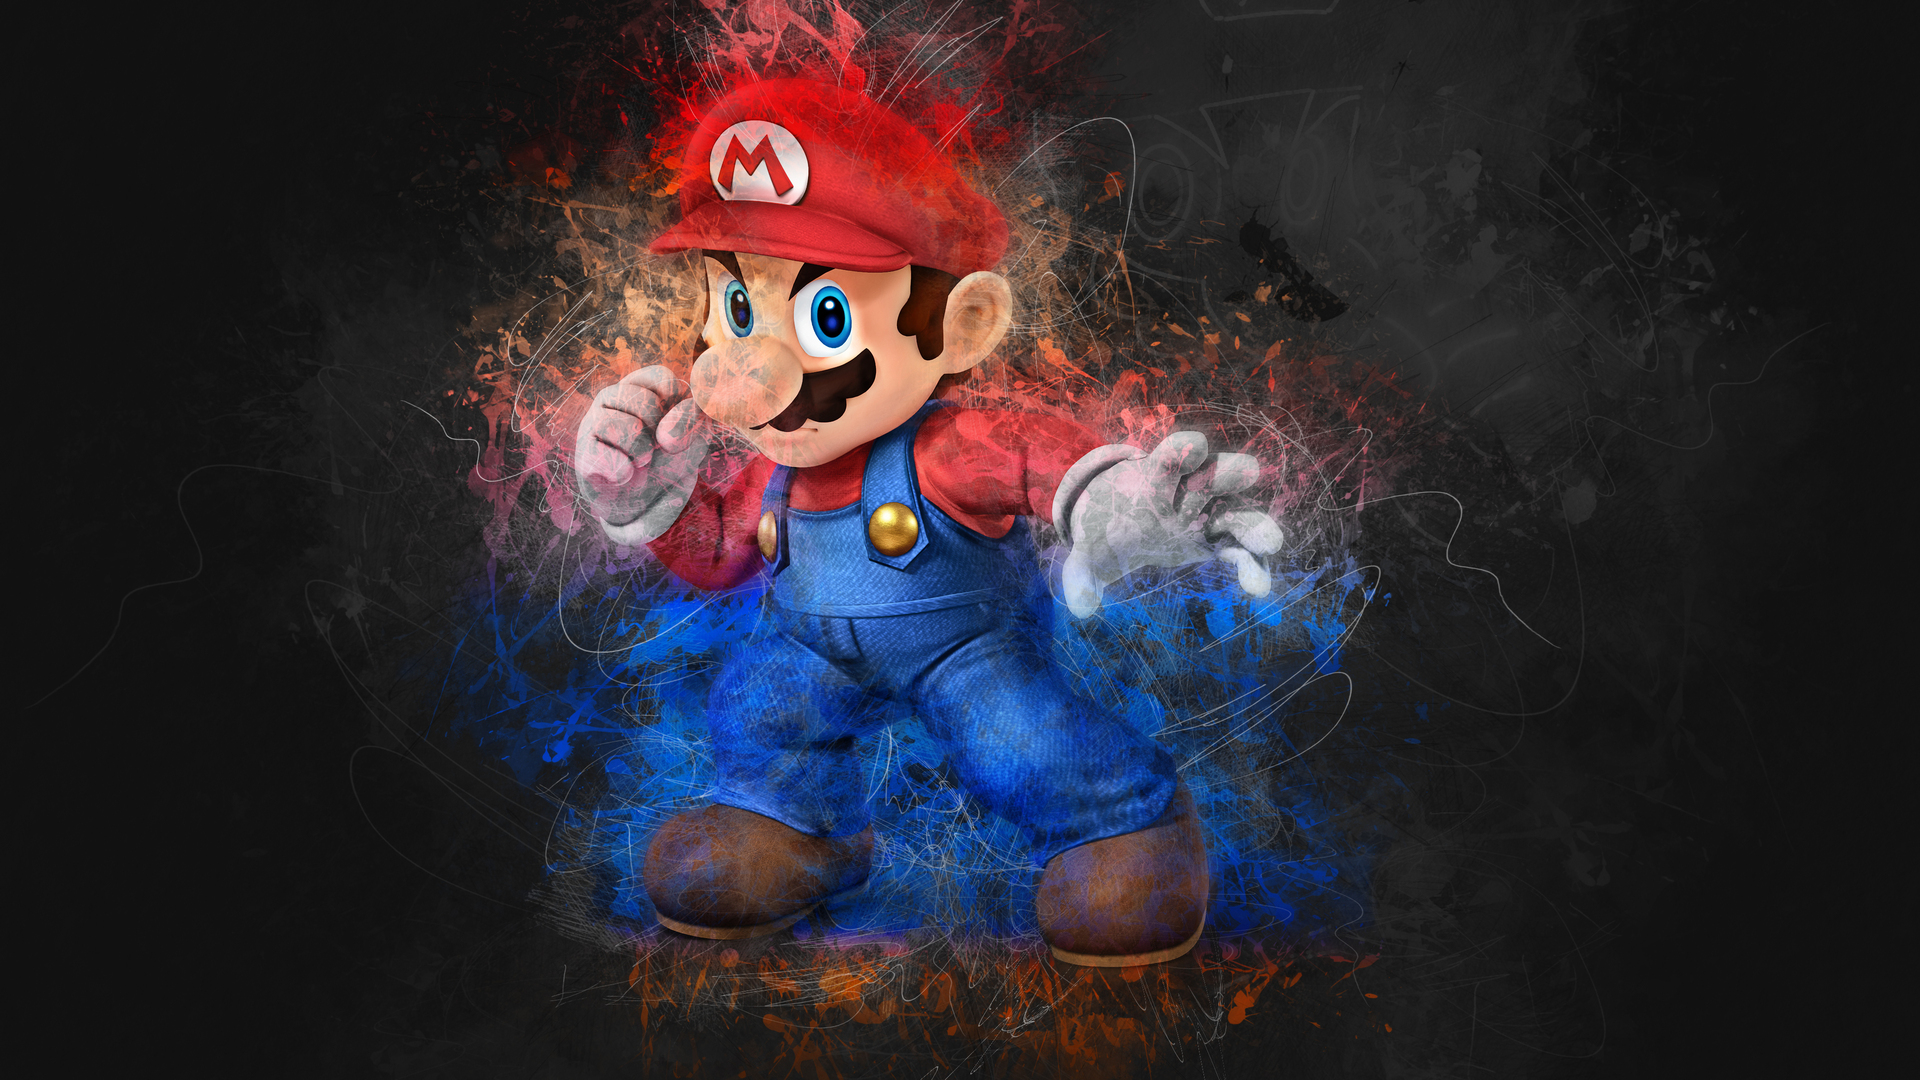 Wallpapers Mario Bros Full Hd